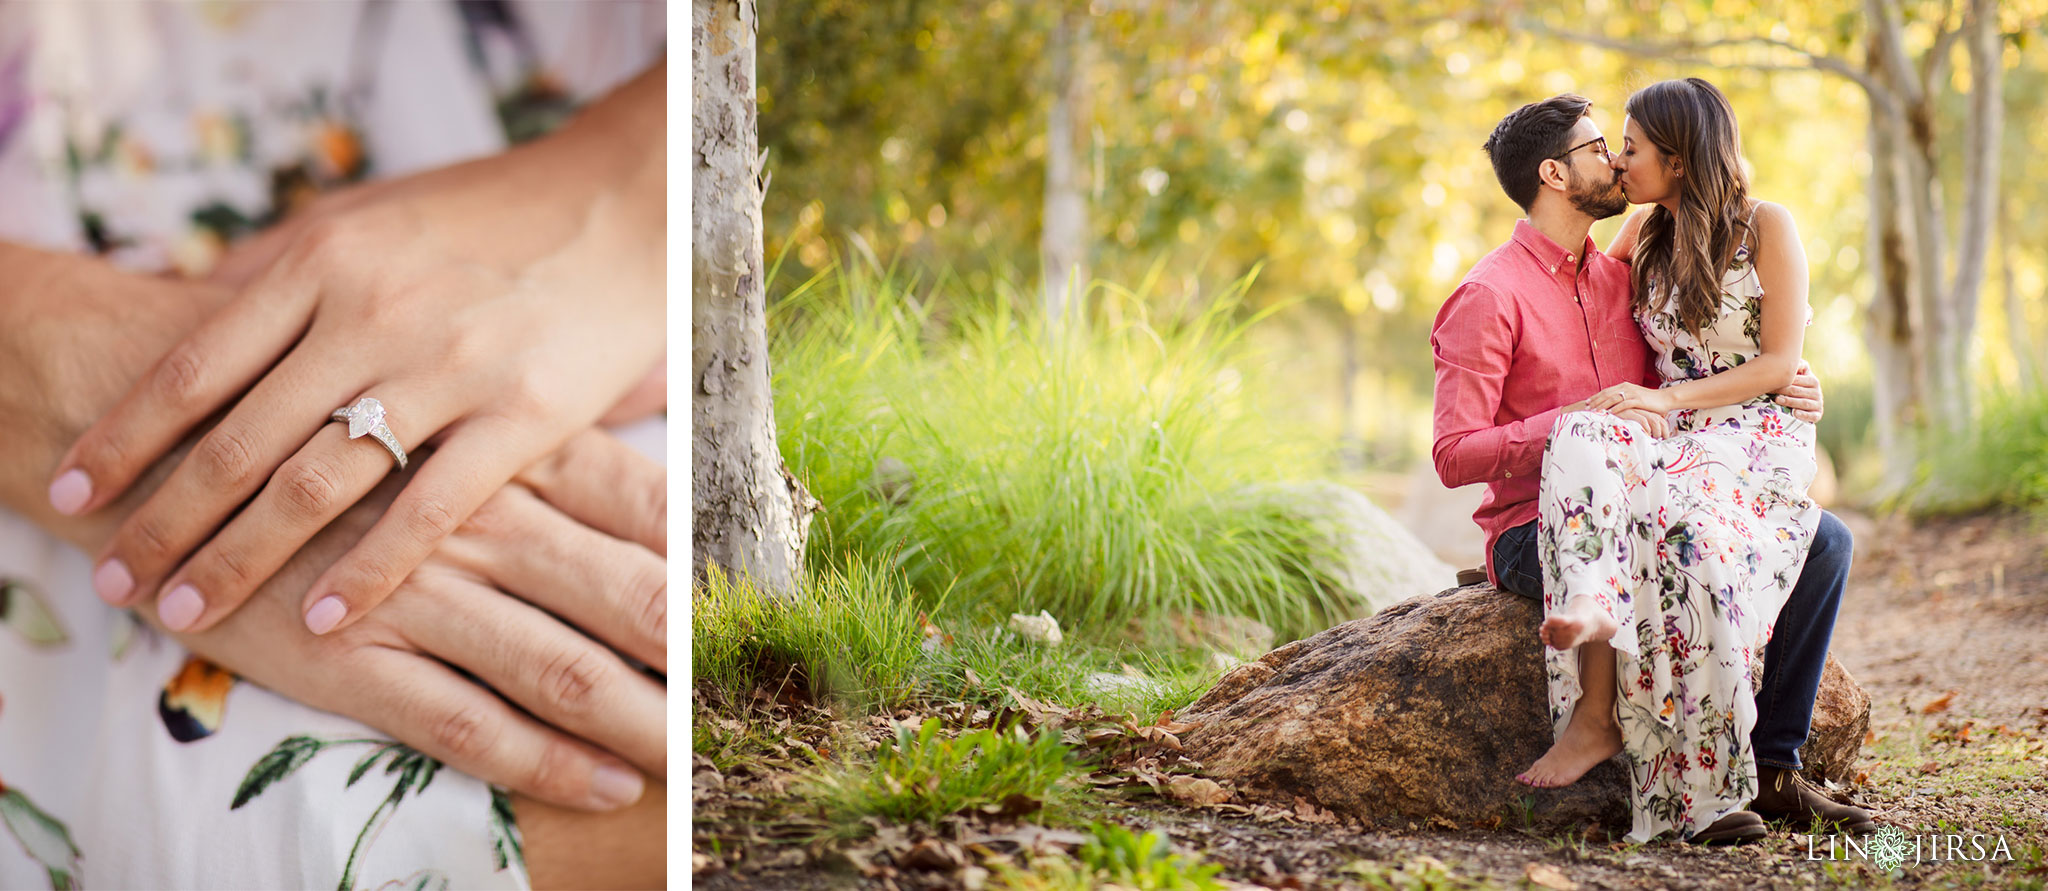 010 jeffrey open space engagement photography